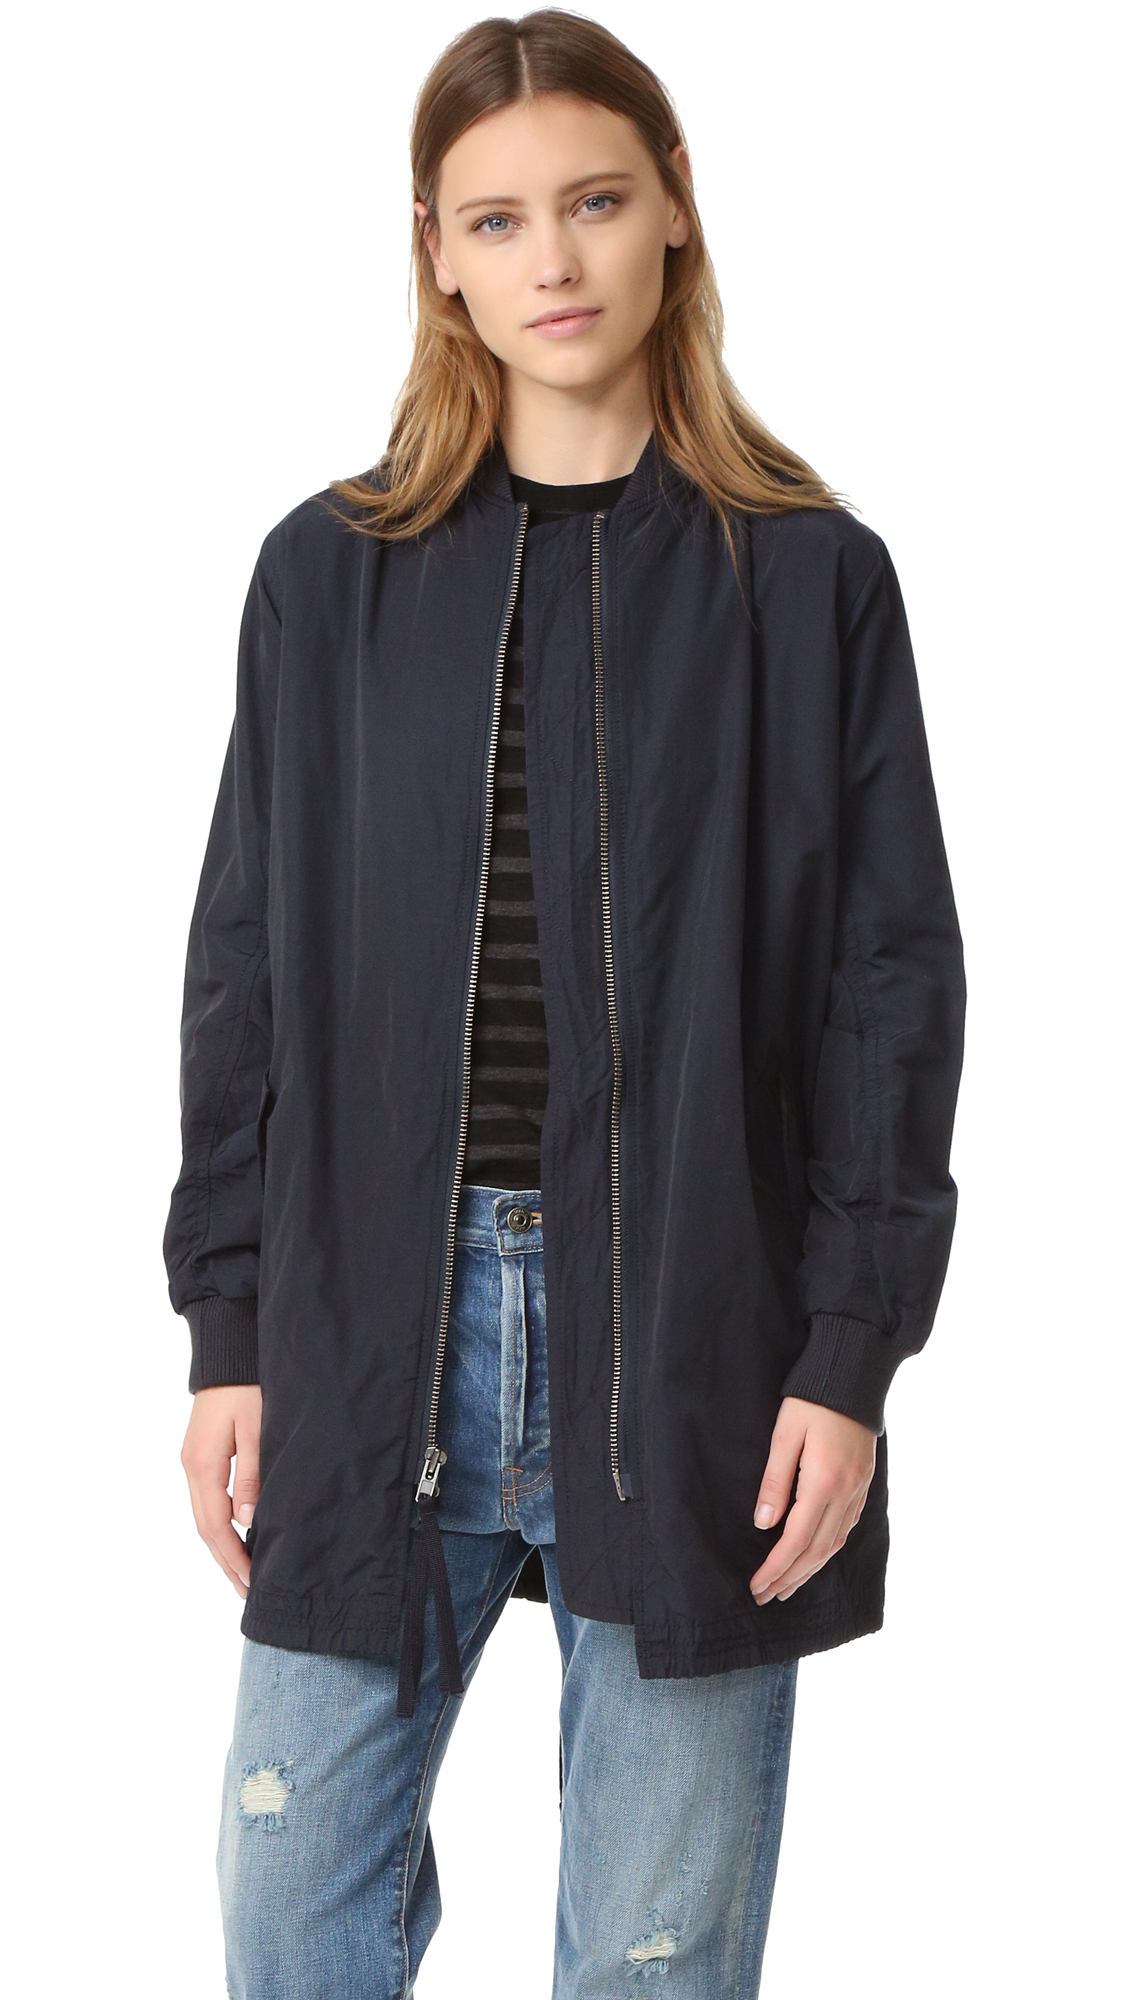 Vince Oversized Bomber Jacket - Coastal at Shopbop